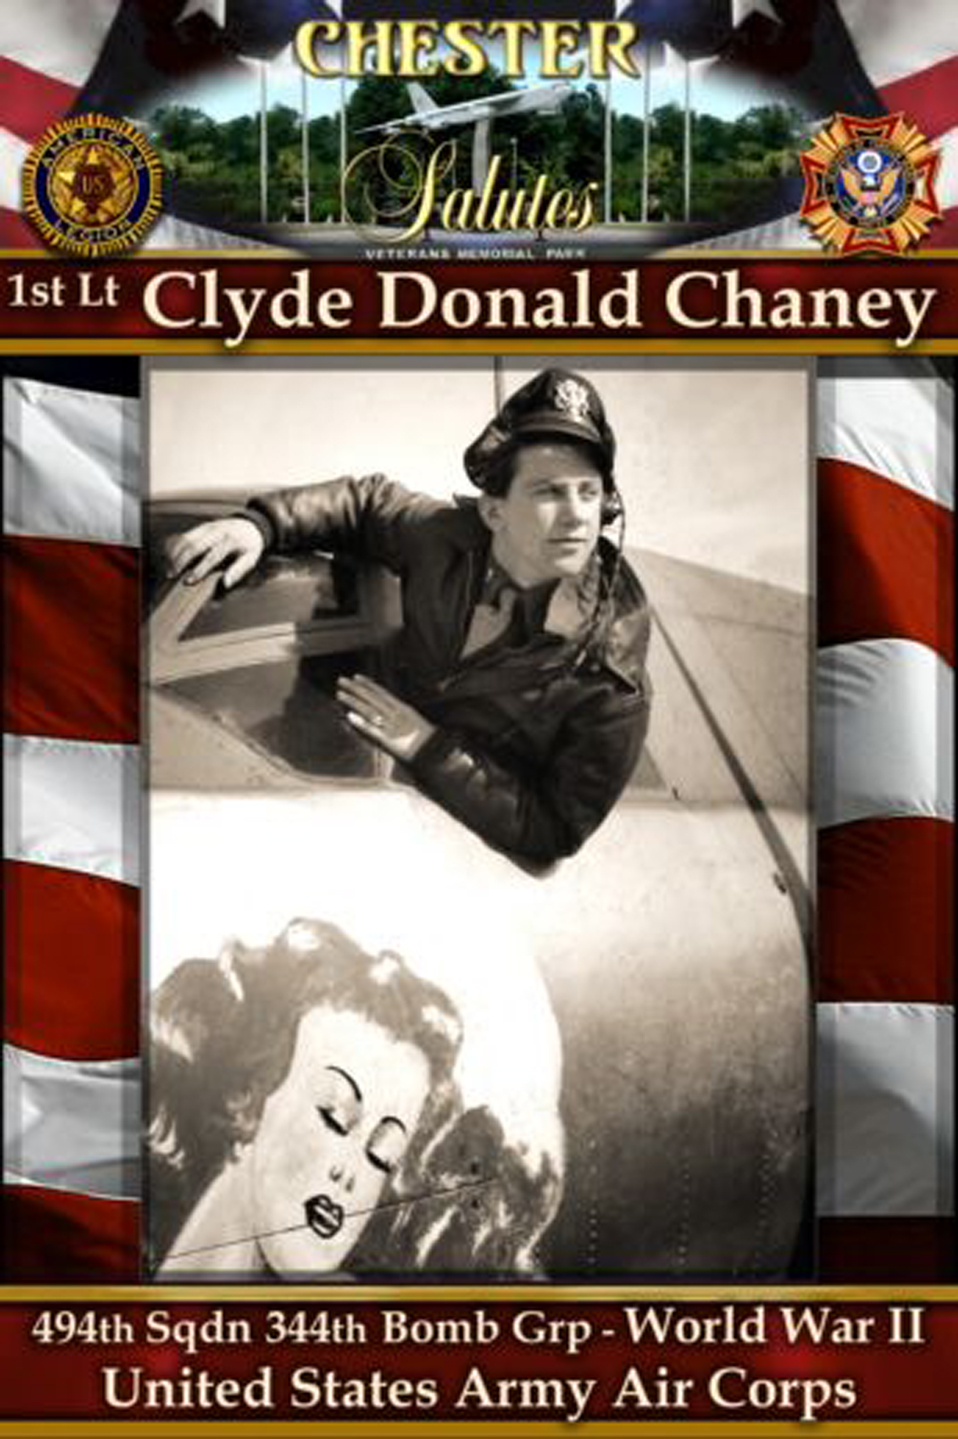 Lt.Clyde Donald Chaney